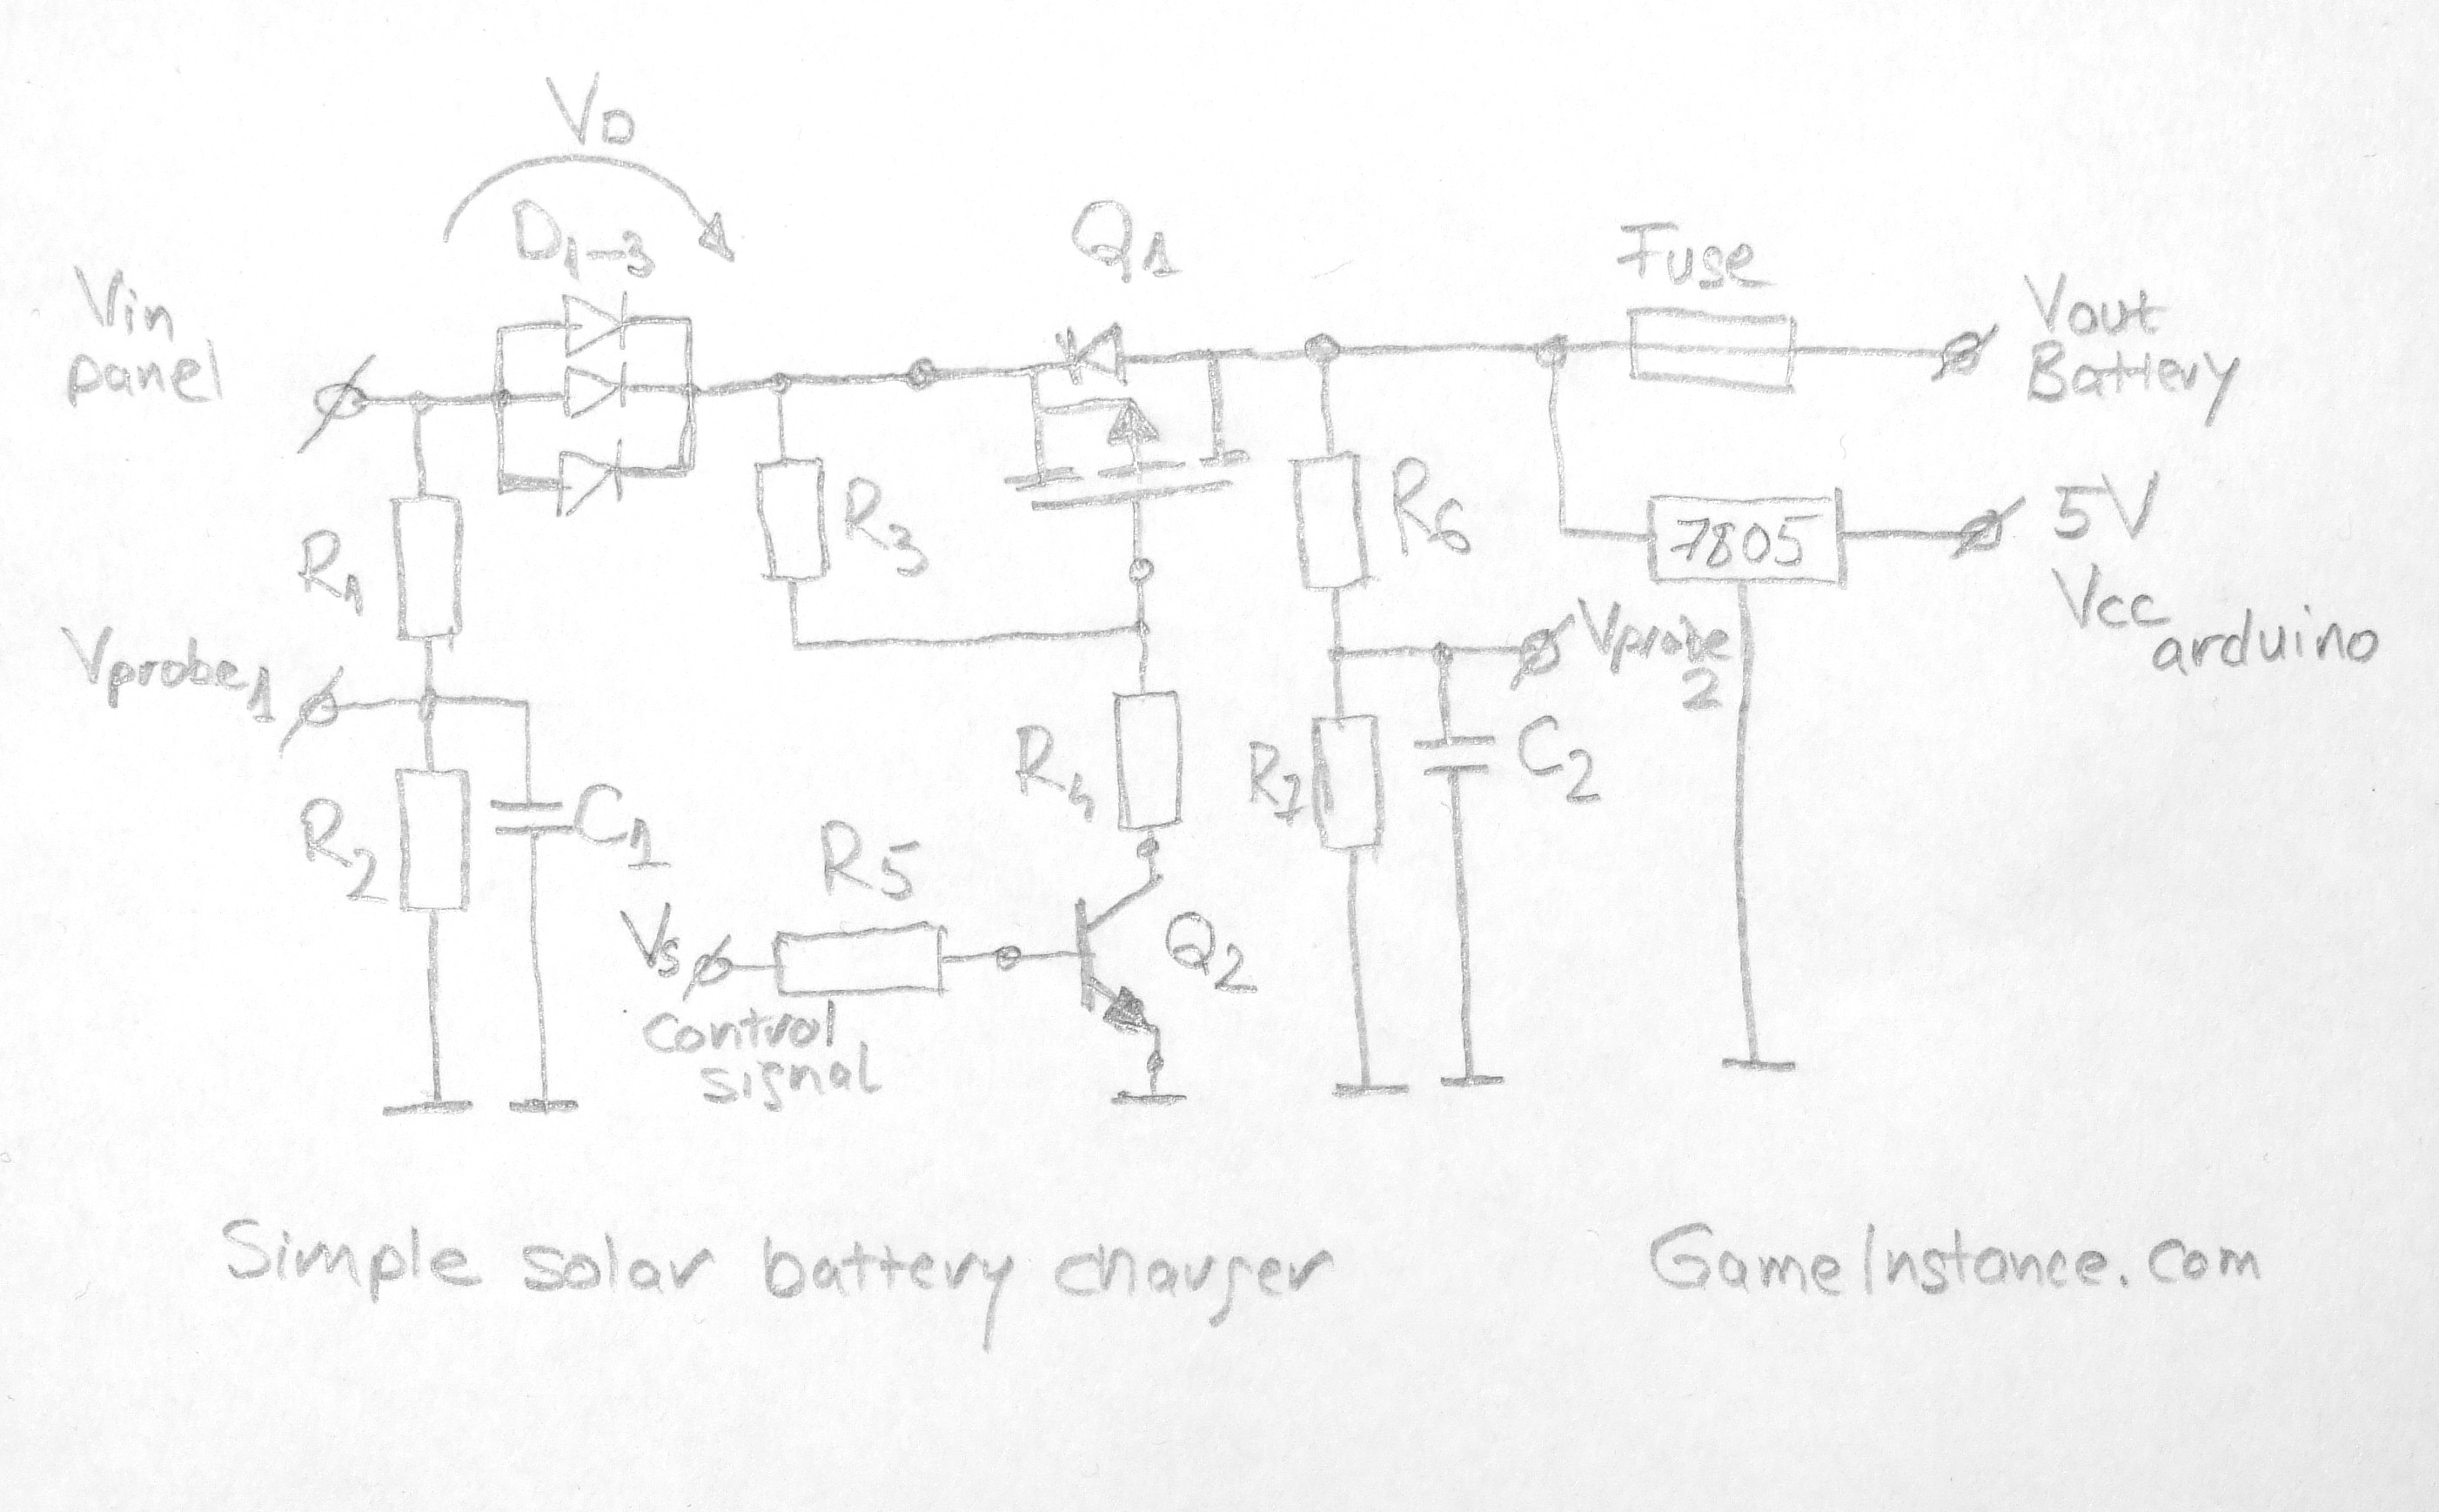 Simple Solar Battery Charger A 3 Dollar Arduino Circuit Diagram Schematics